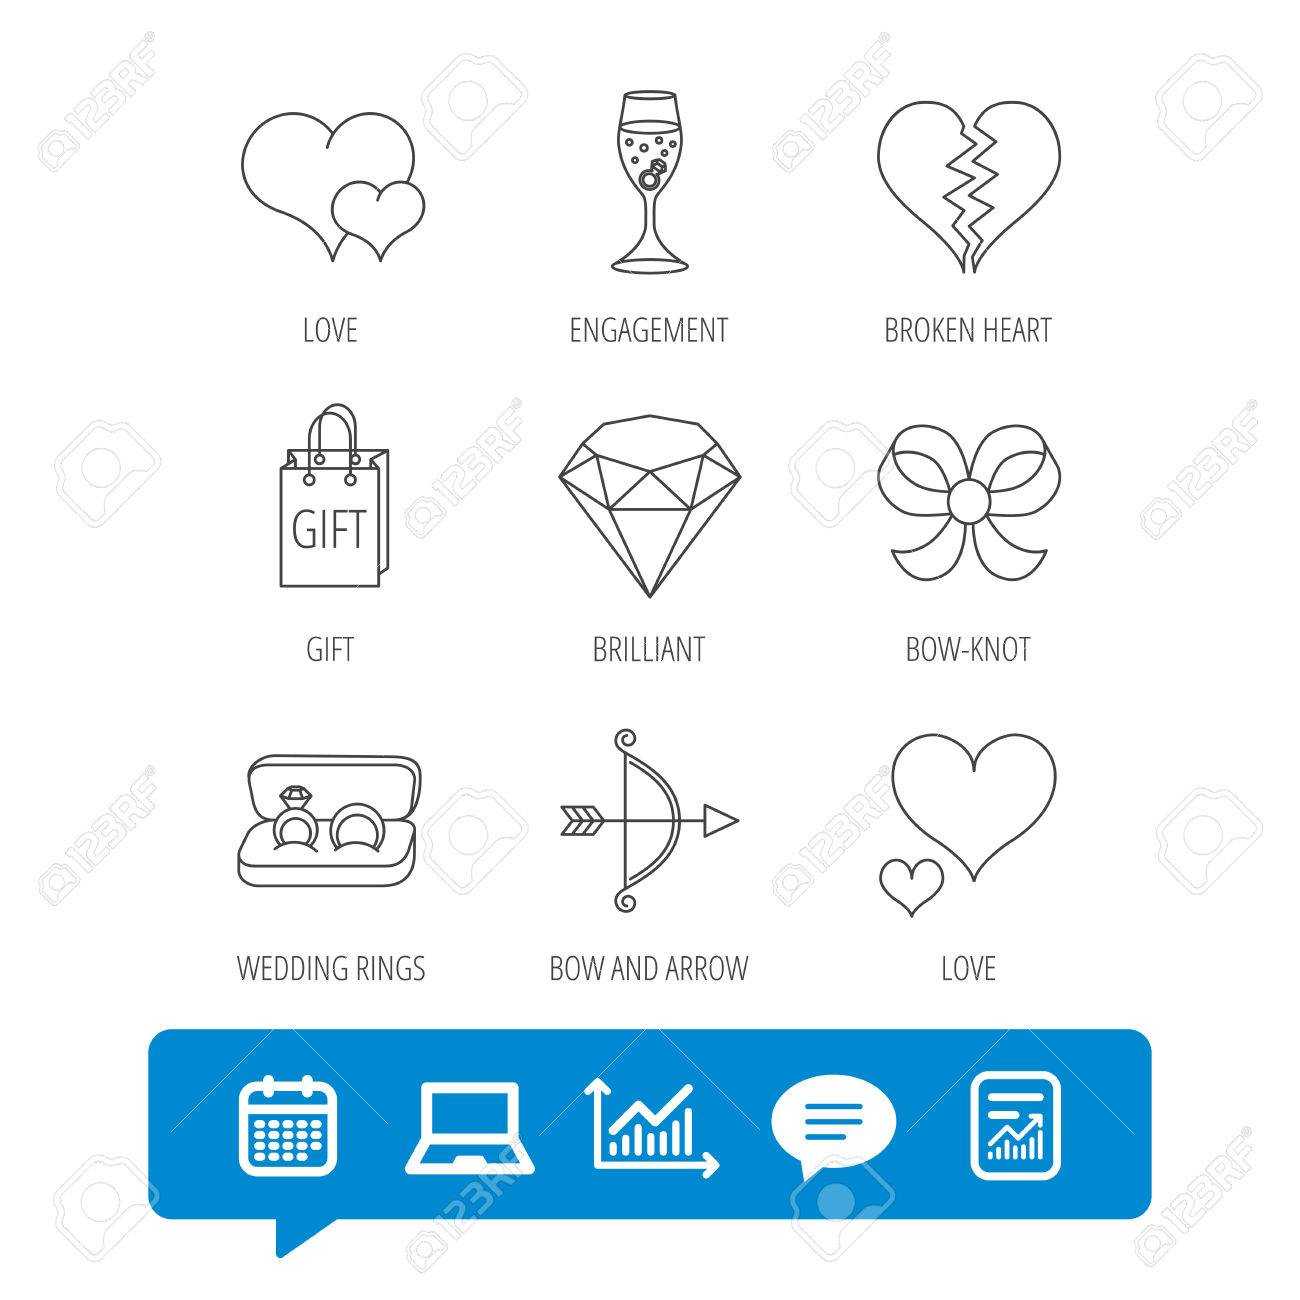 Love Heart Gift Box And Wedding Rings Icons Broken Heart And